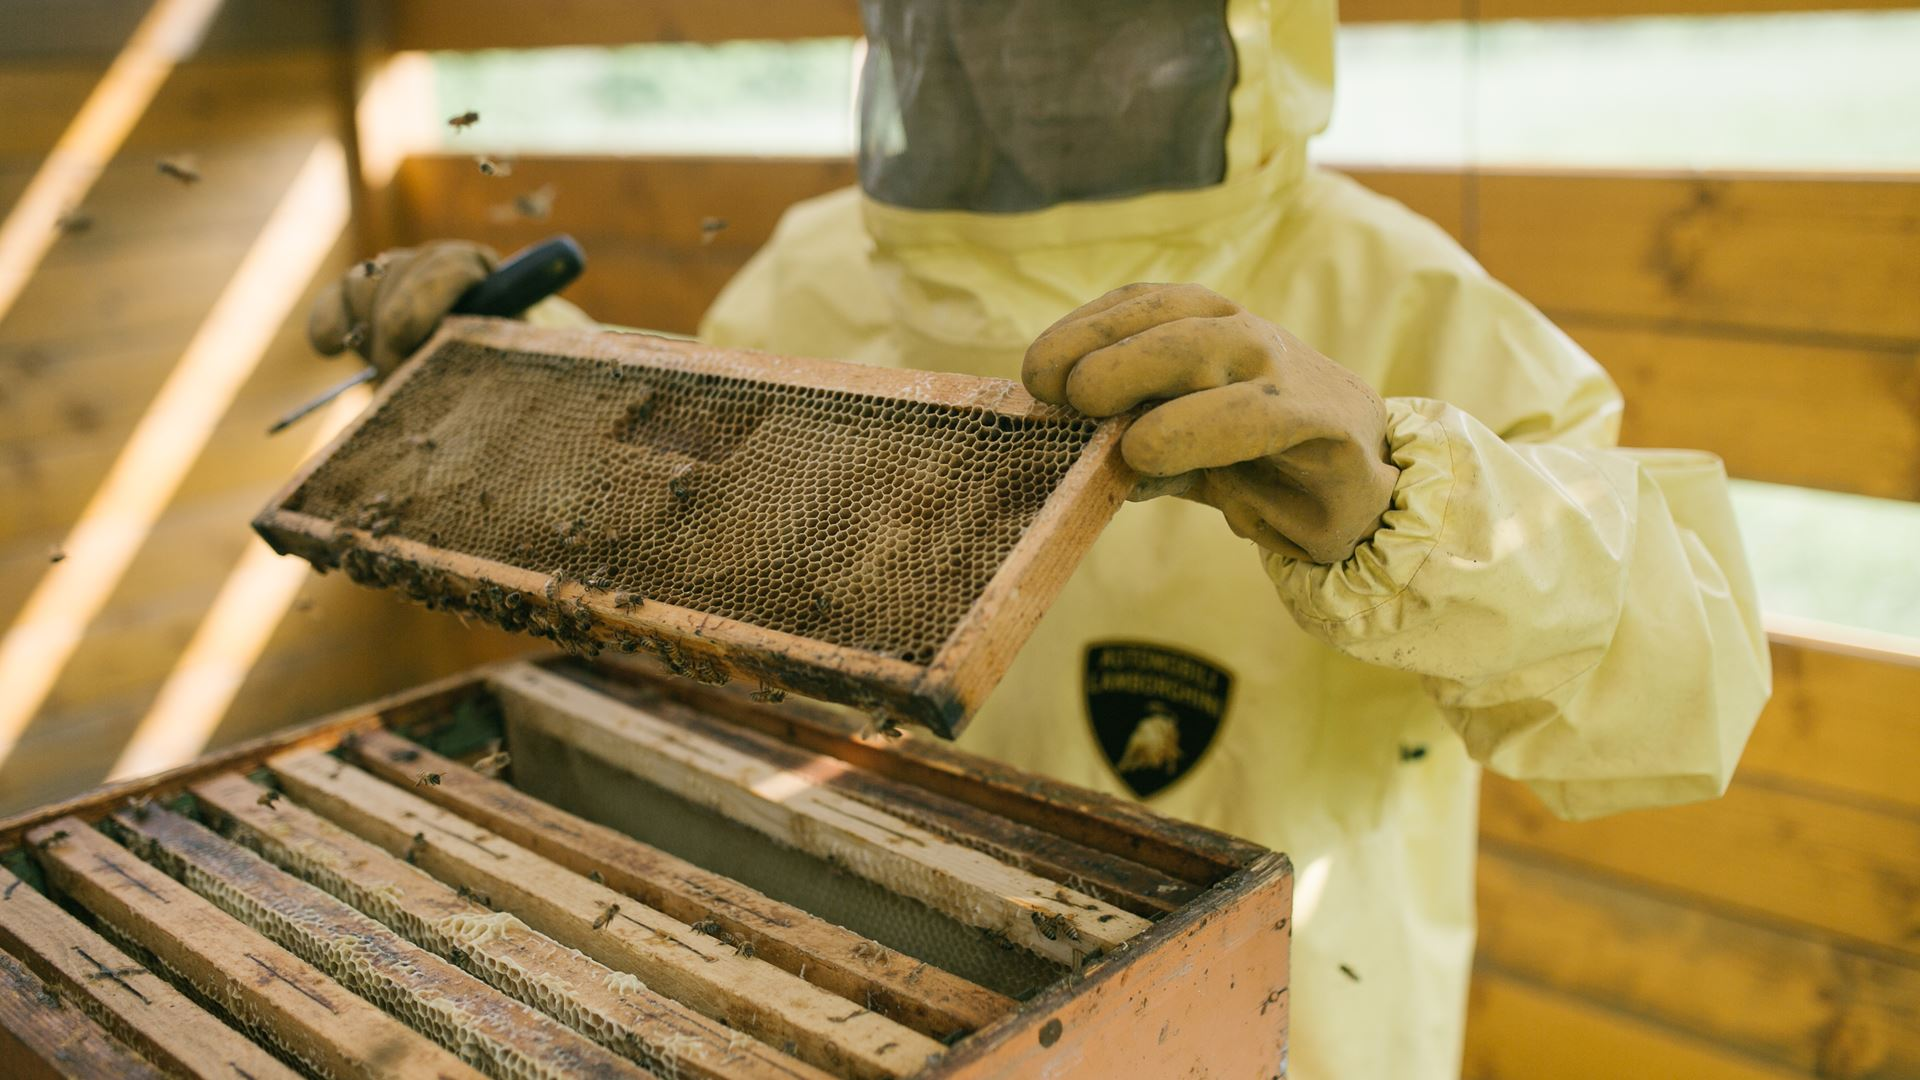 May 20, World Bee Day: Since 2016 Lamborghini has worked with bees in an environmental biomonitoring project - Image 6